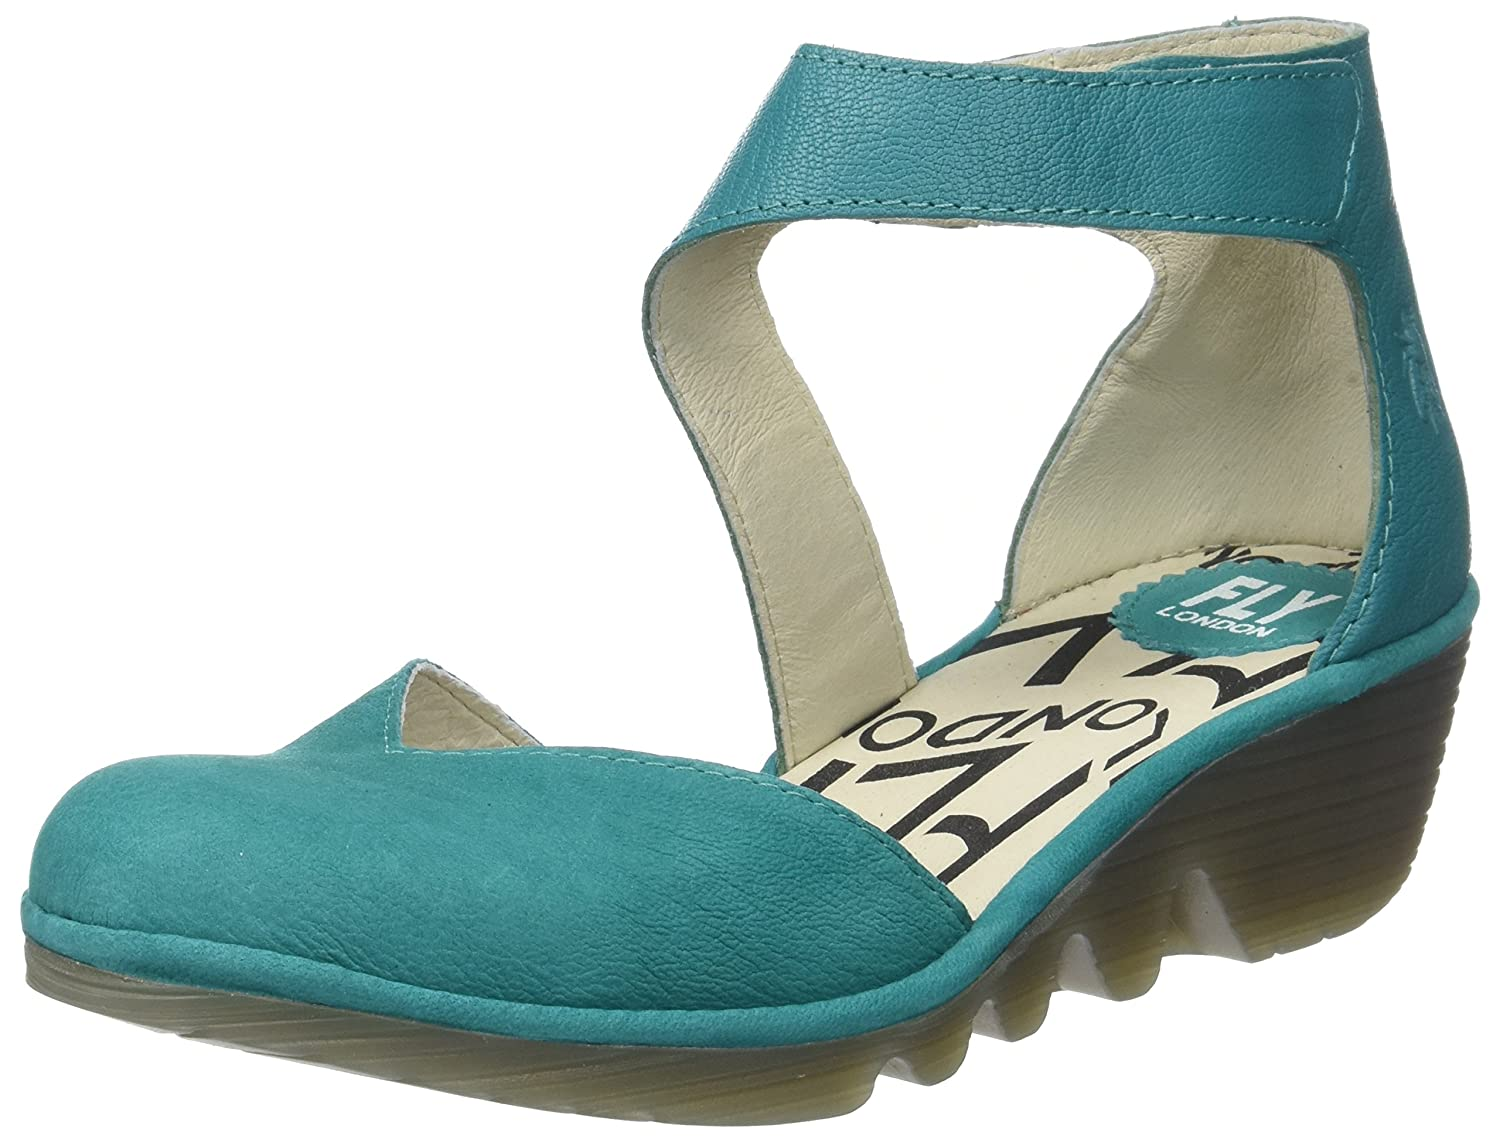 Fly London Pats801fly, Zapatos con Tacon y Correa de Tobillo para Mujer